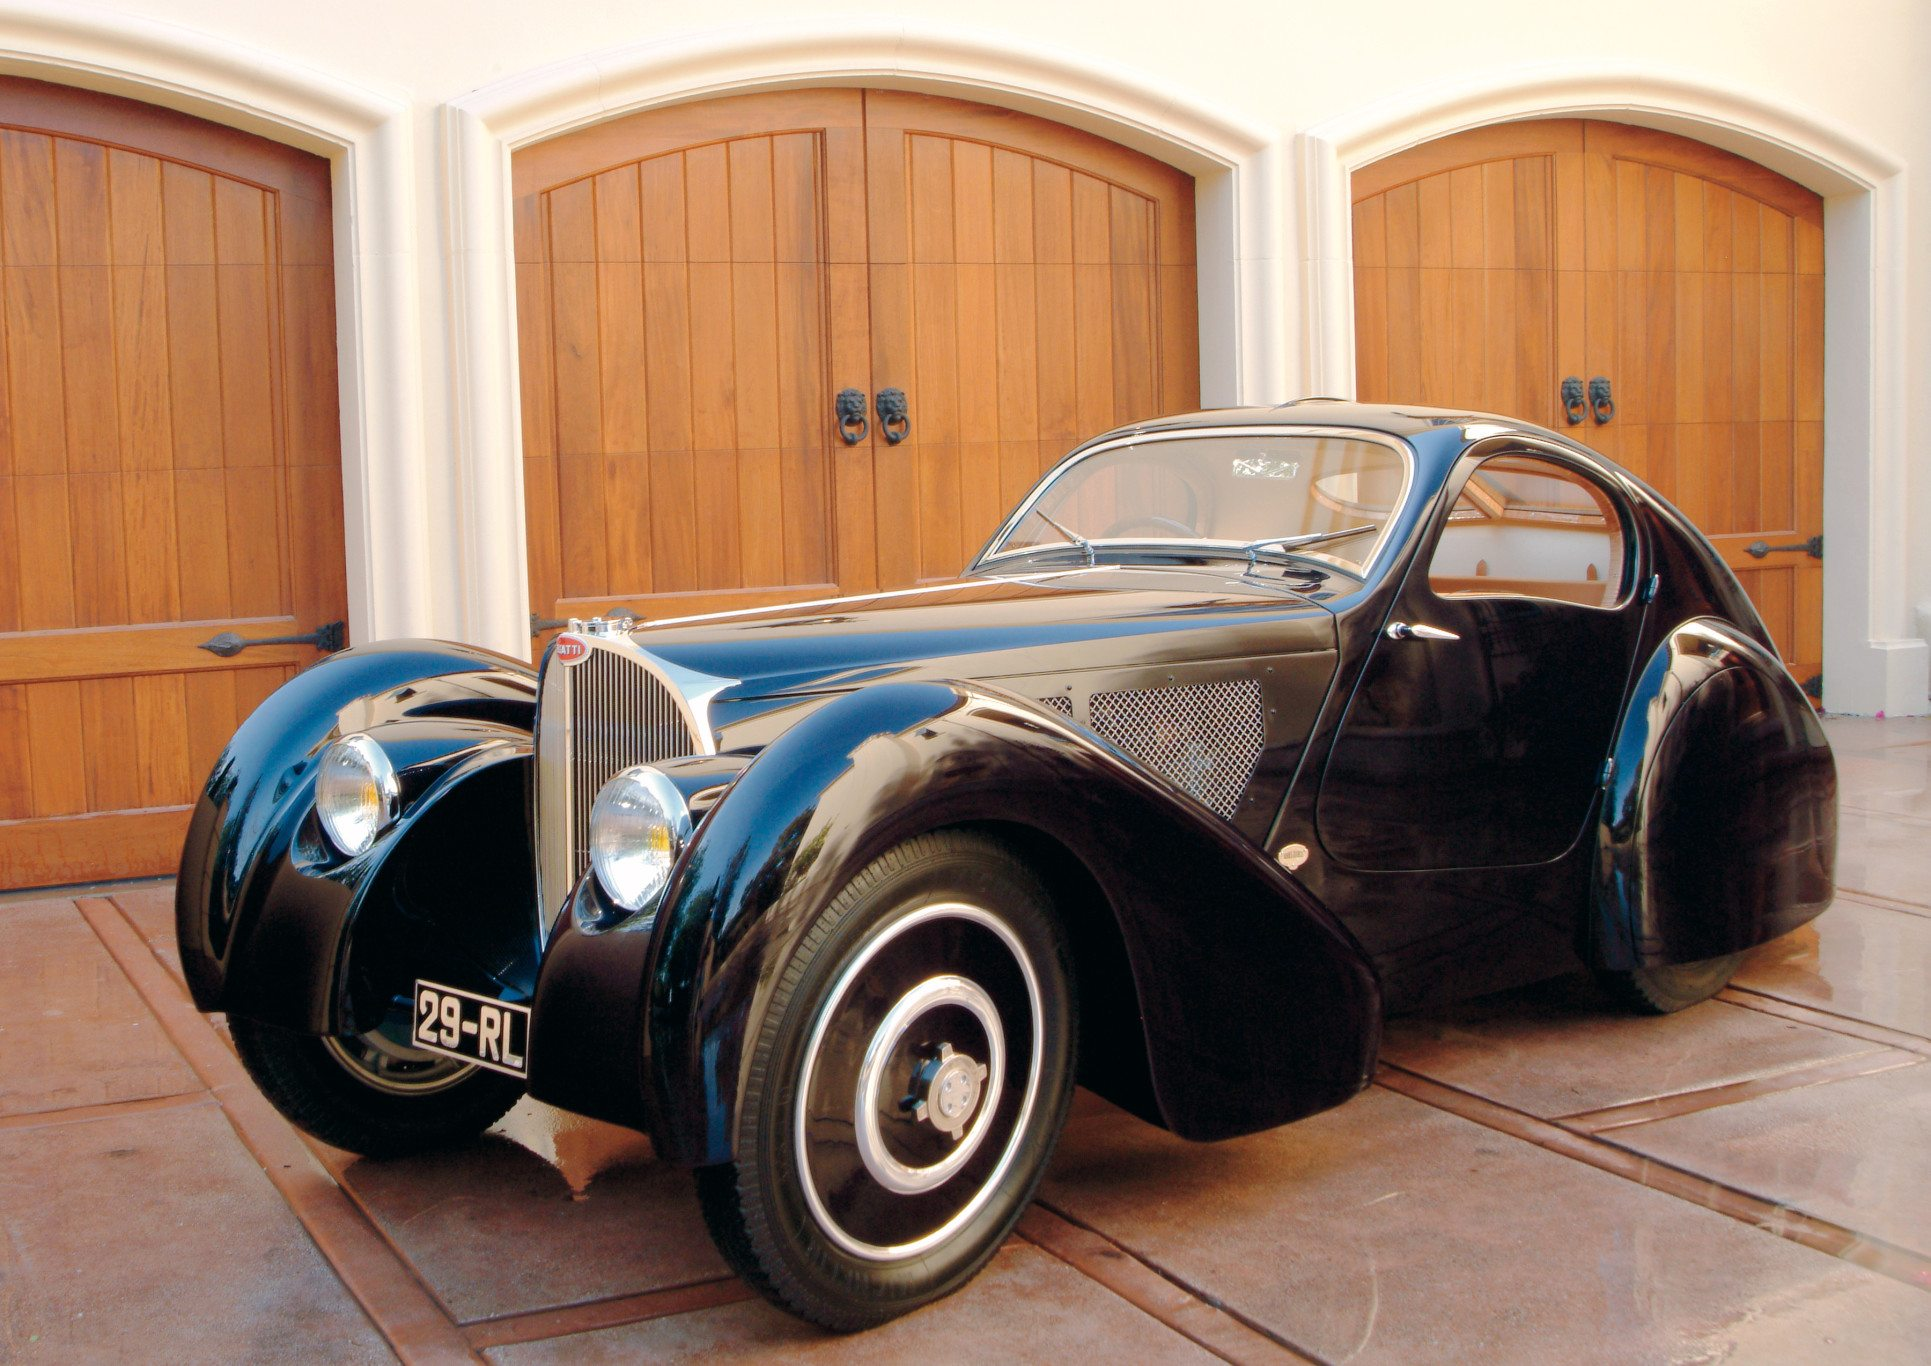 The Bugatti Type 51 Dubos Coupe The Racecar And The Road Car Heacock Classic Insurance